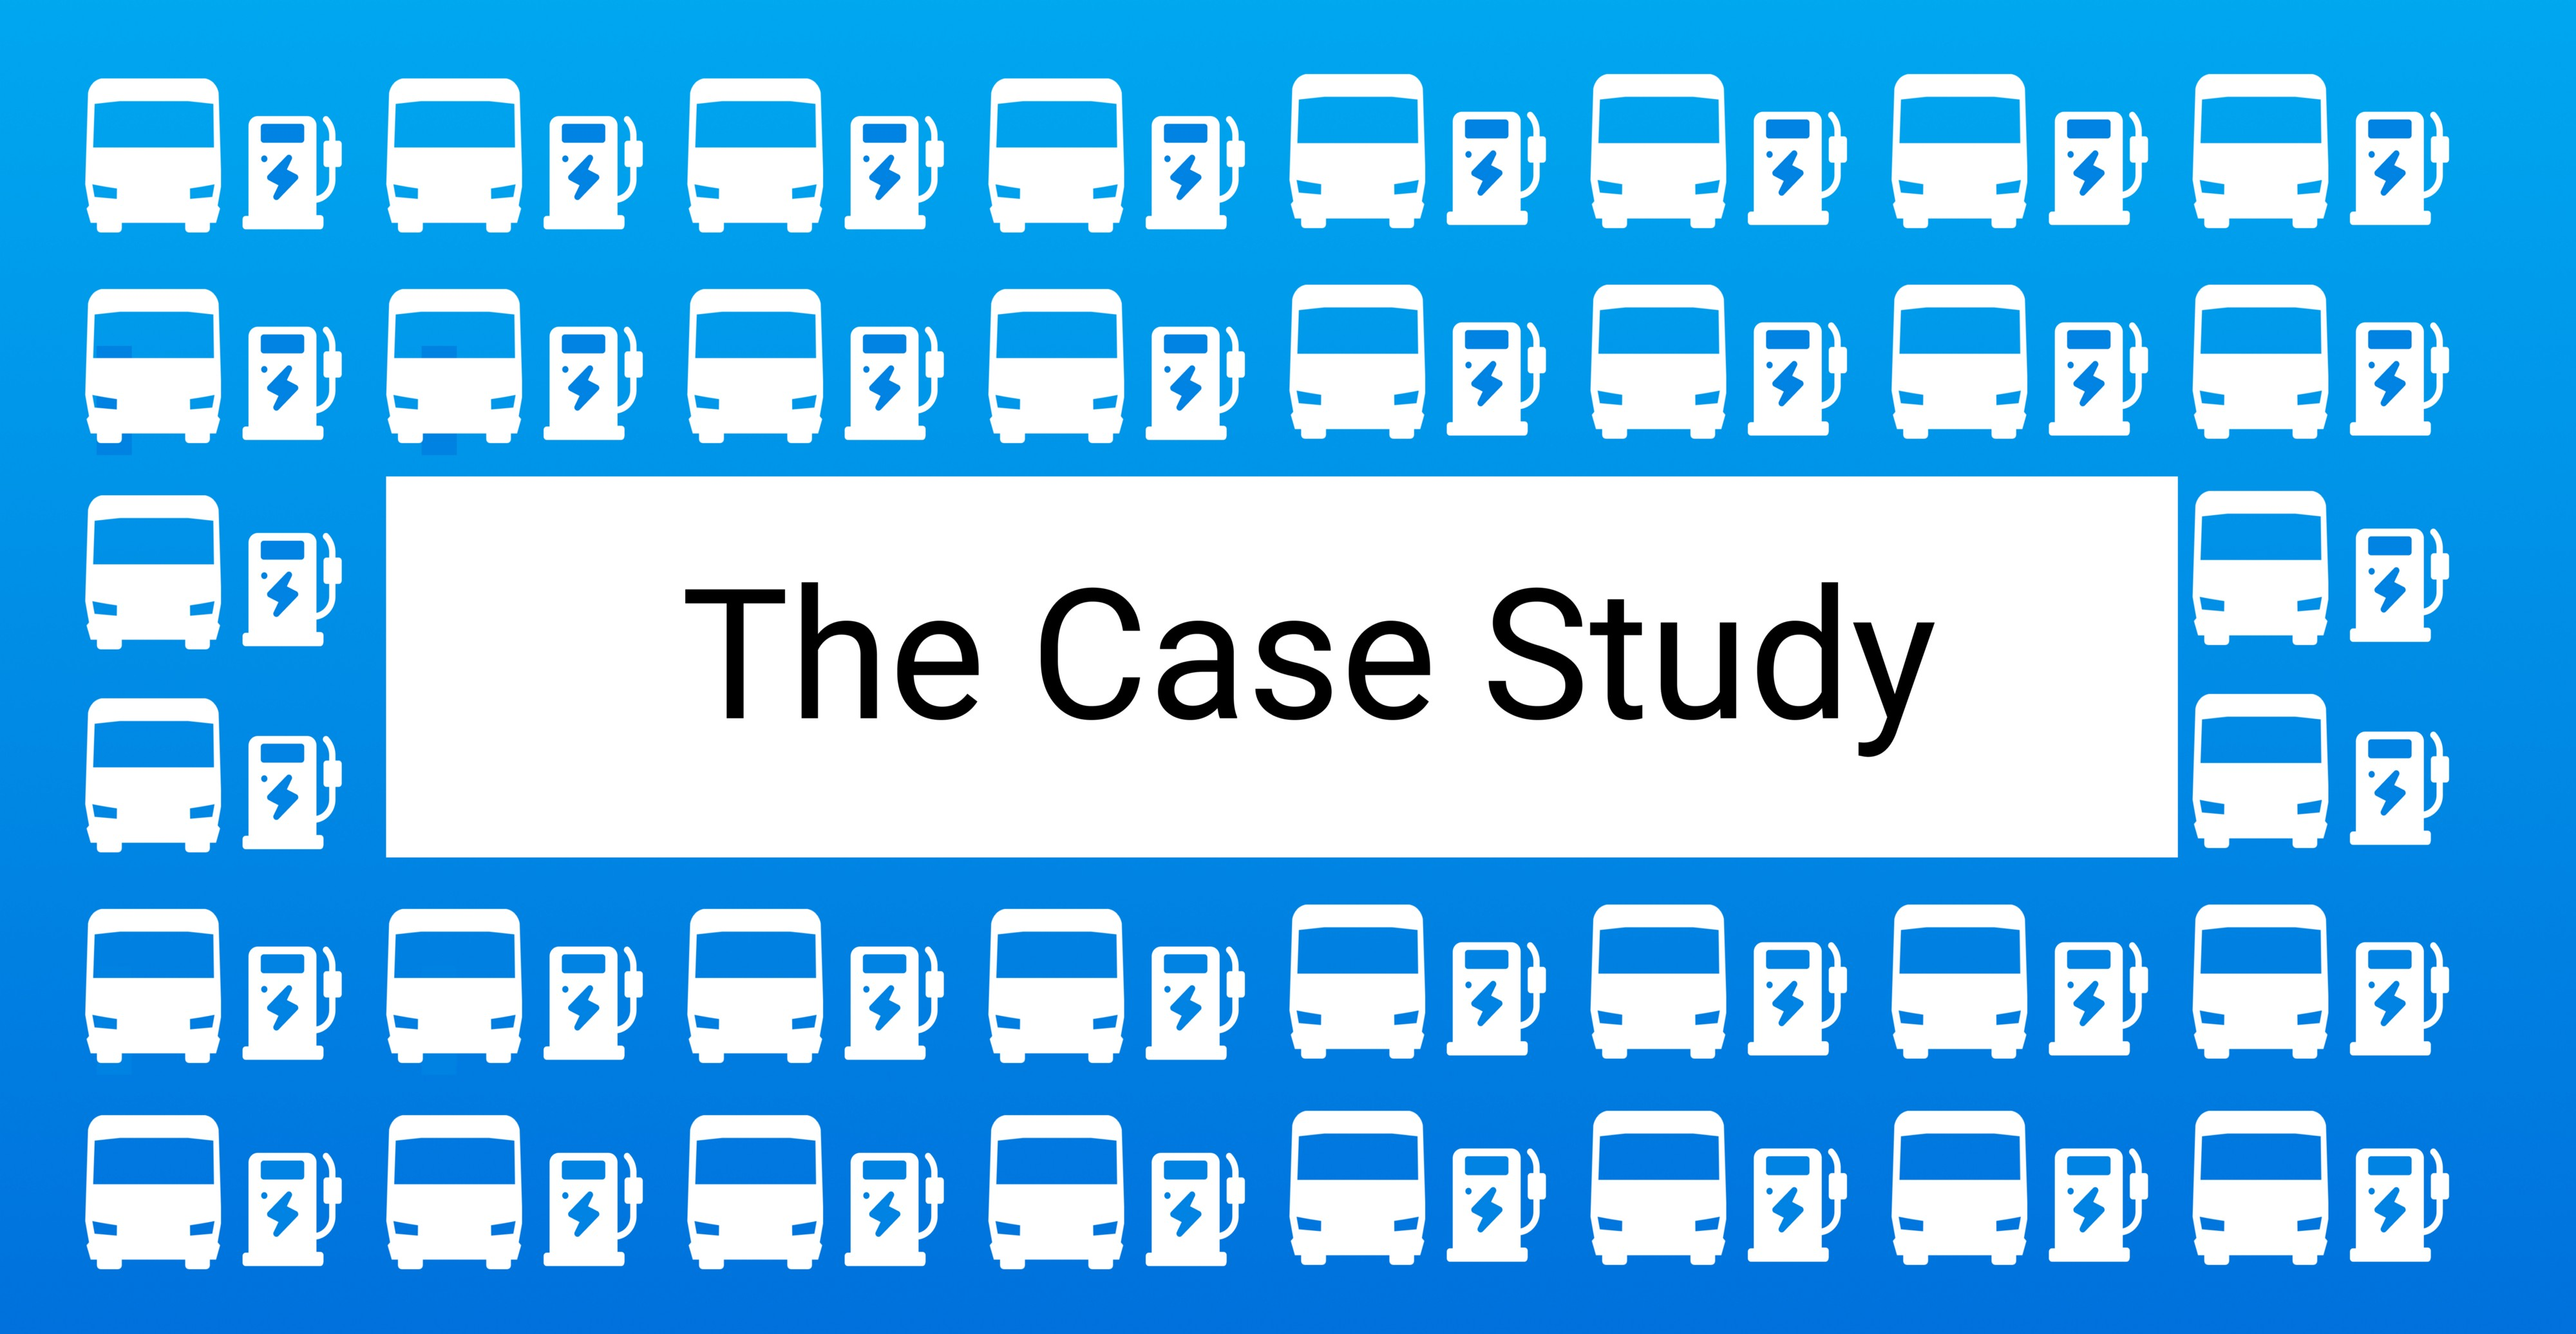 The Case Study for electric bus charging with intelligent fleet management software and smart charging